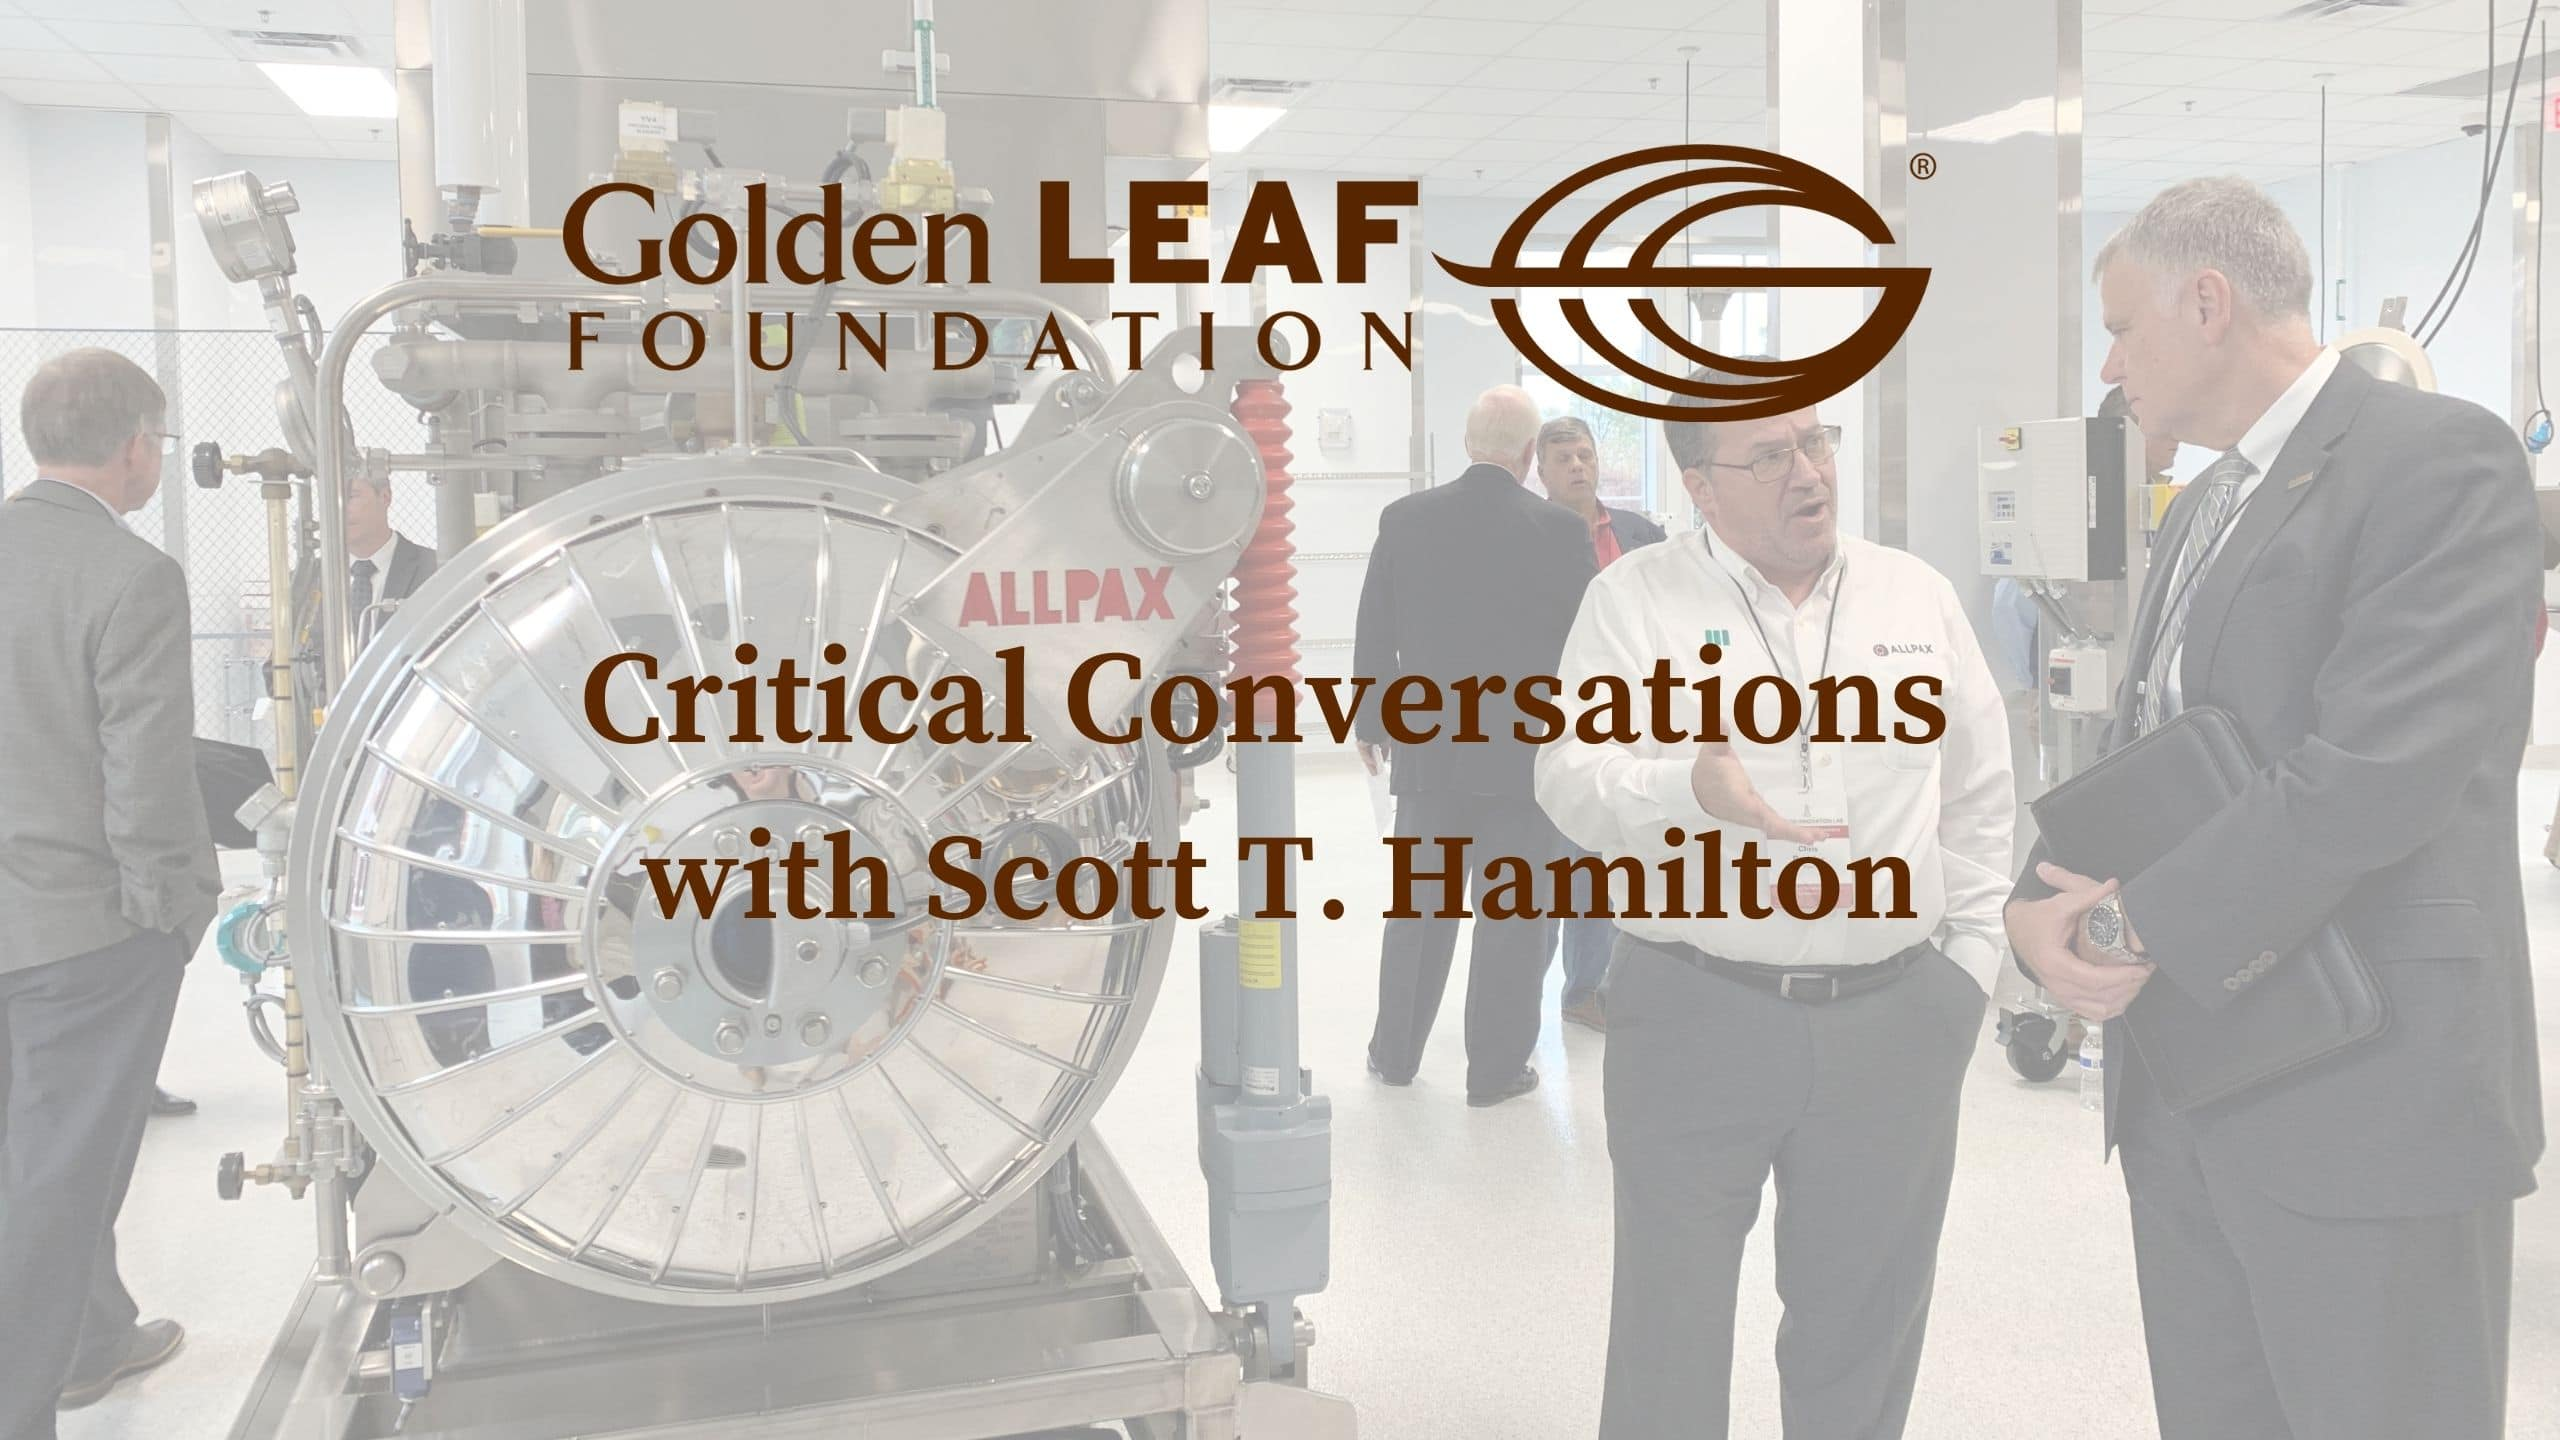 Critical Conversations with Scott T. Hamilton featuring Dr. Mark Poarch, President of the North Carolina Association of Community College Presidents